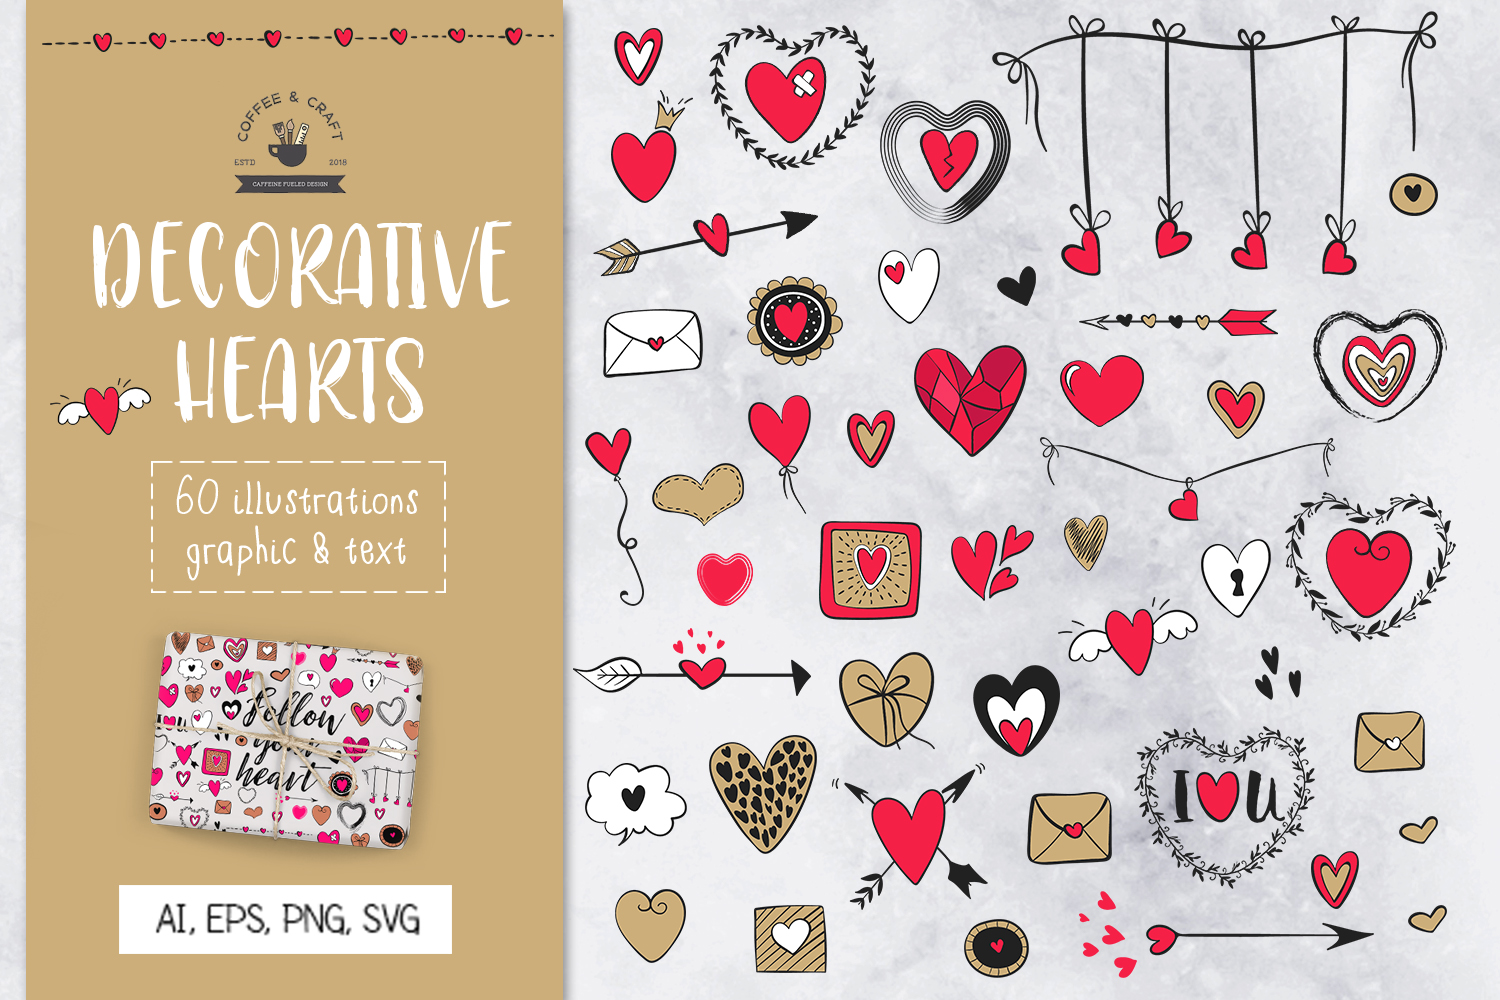 Decorative Hearts example image 1